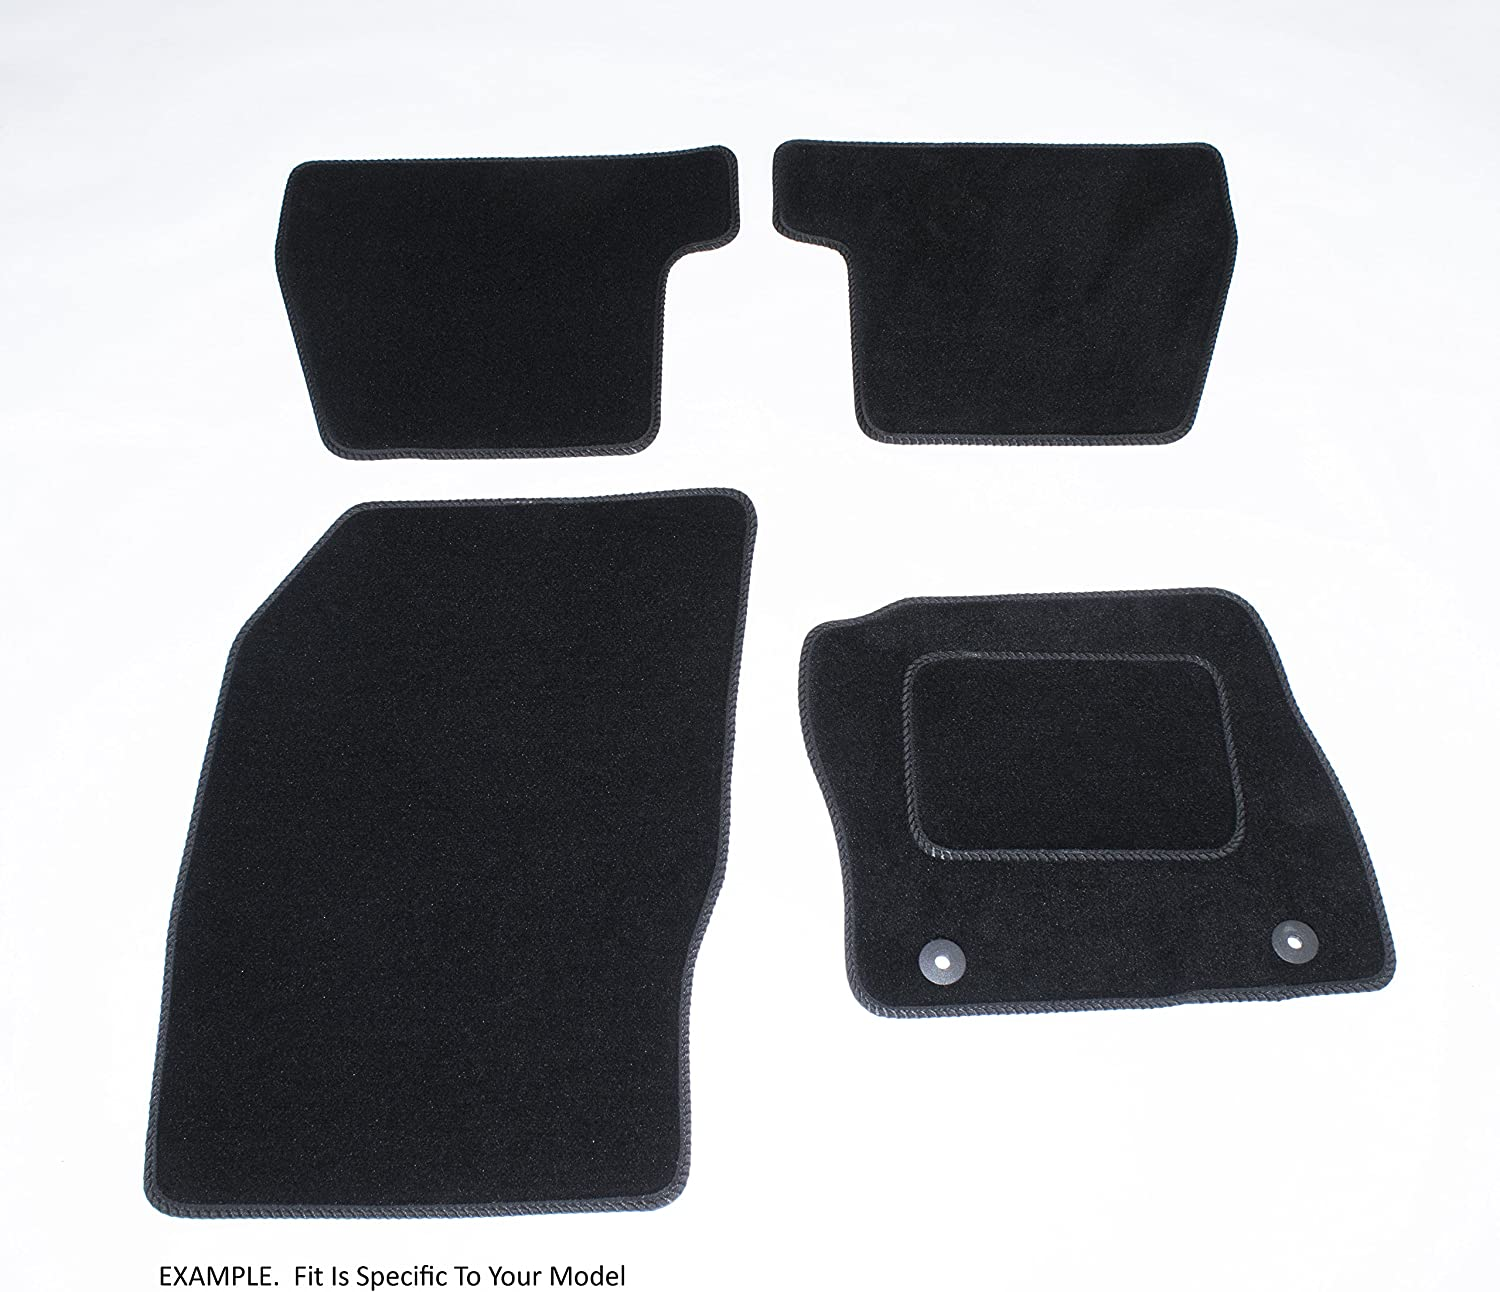 Connected Essentials CEM500 Citroen Xsara 1997-2006 Deluxe Black with Black Trim Car Mat Set